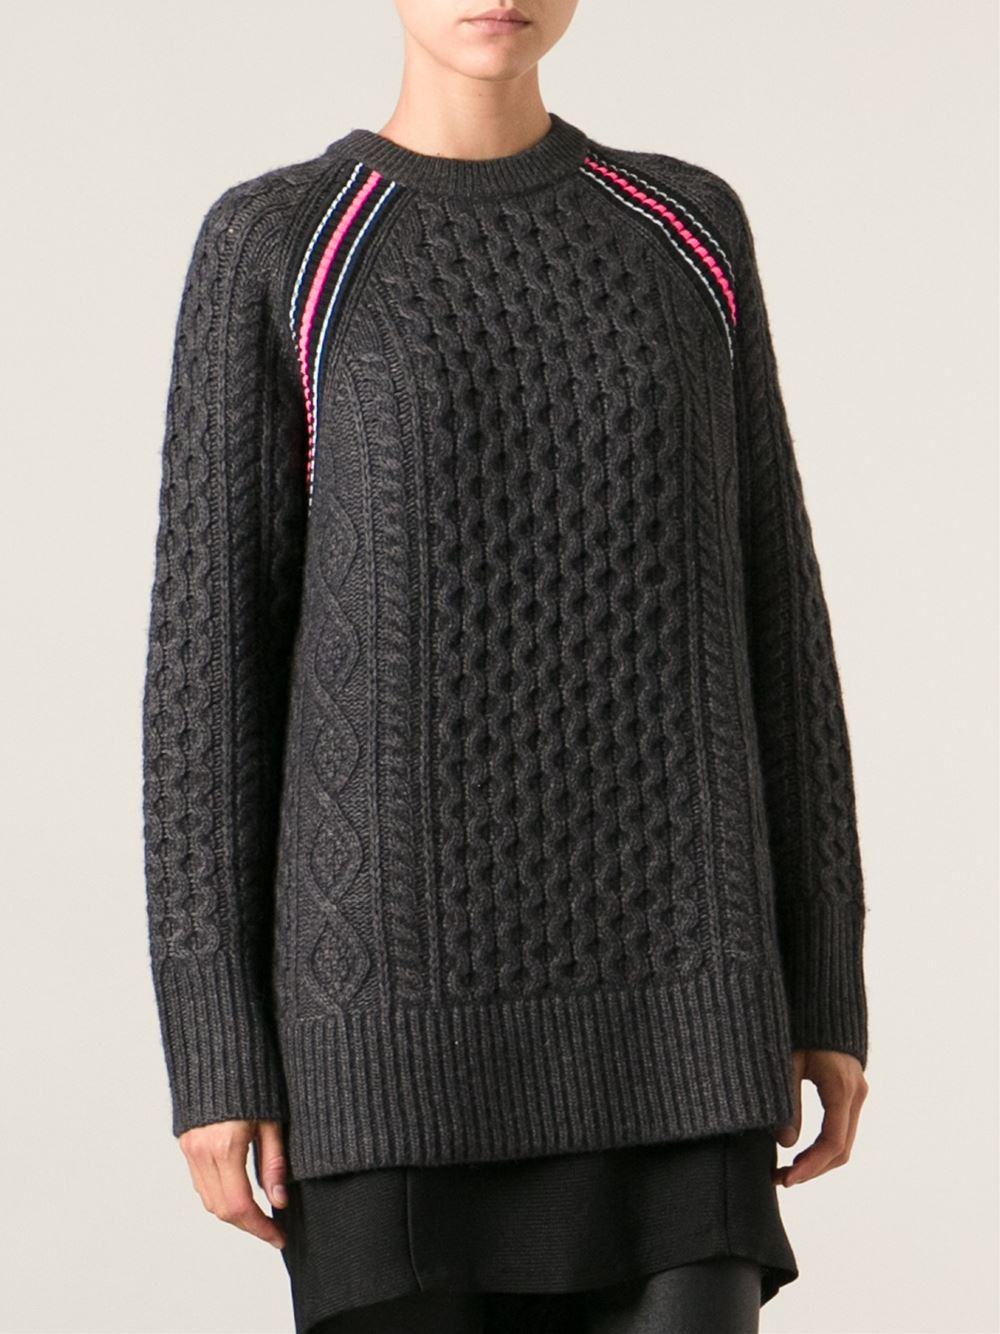 T by alexander wang Cable Knit Sweater in Gray | Lyst